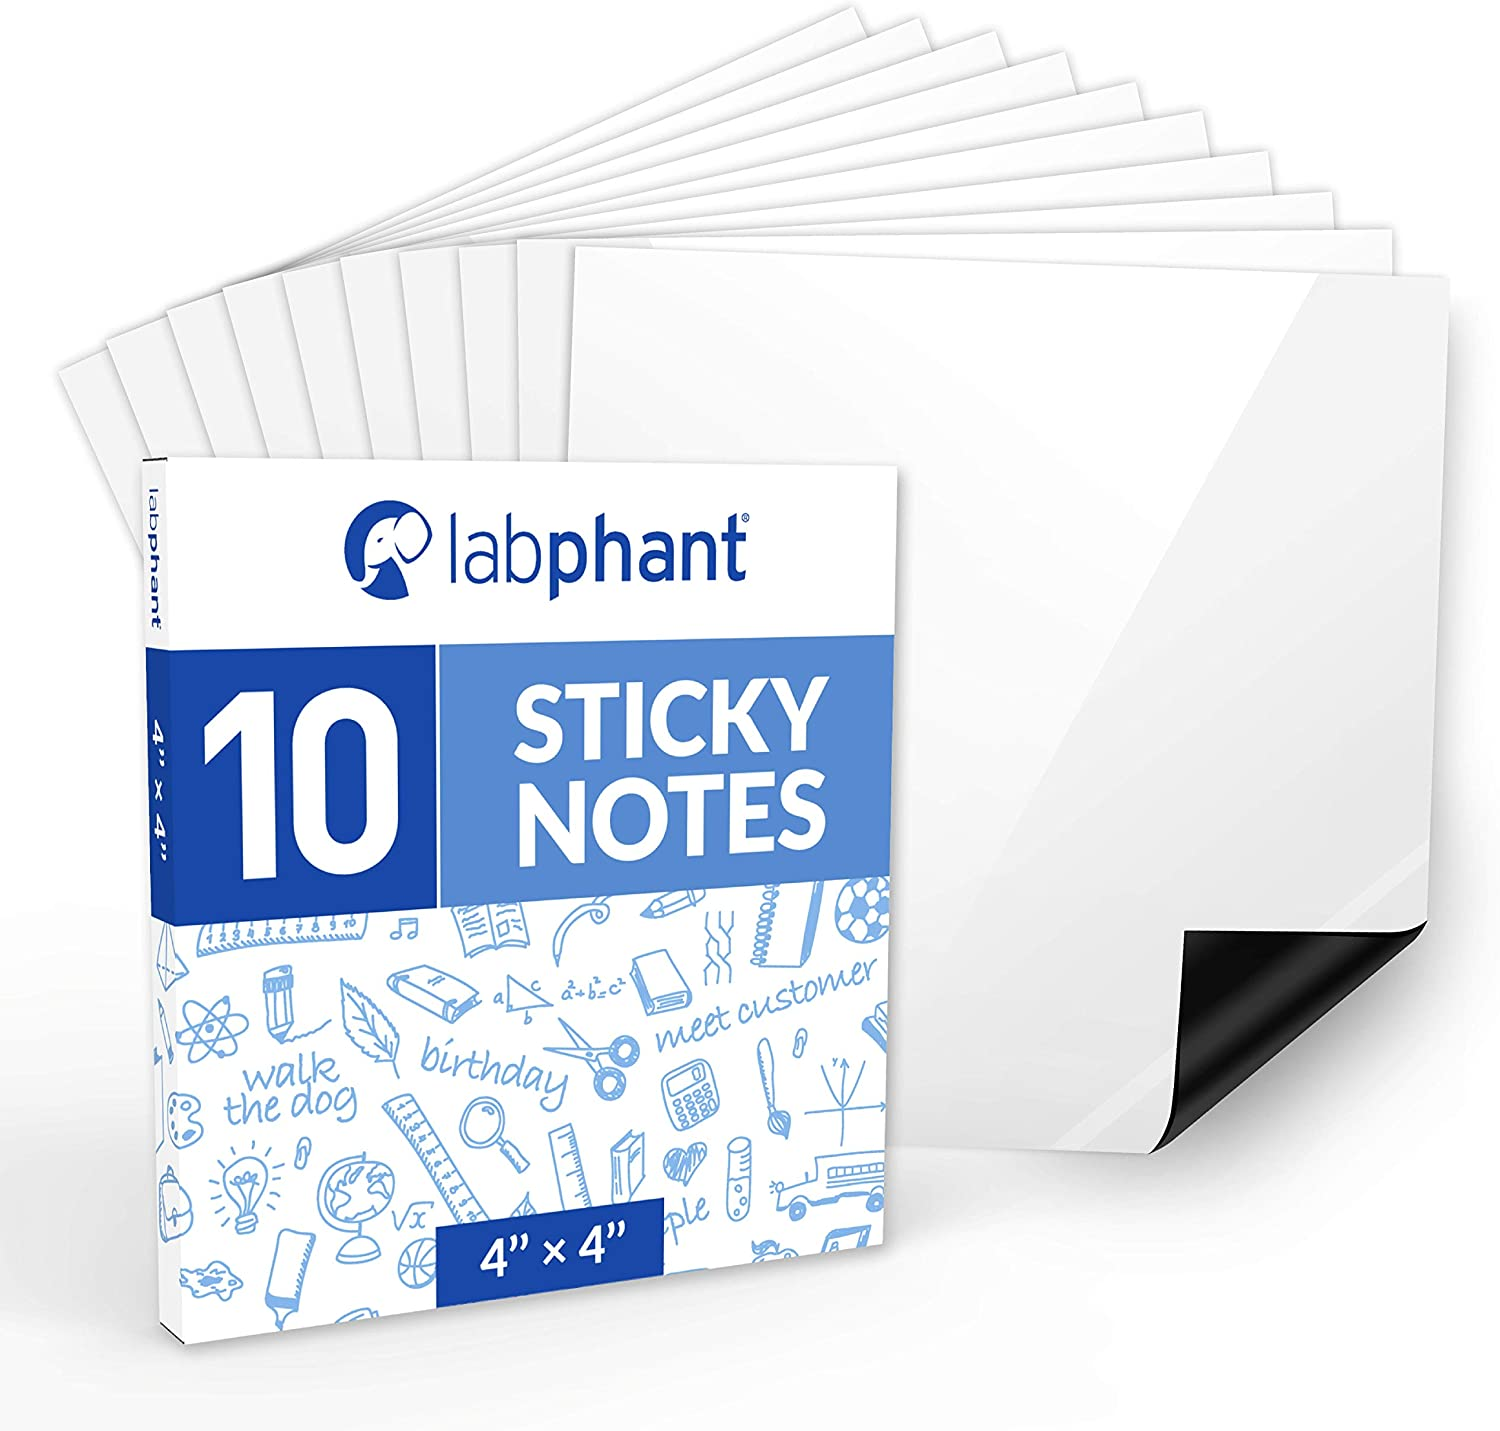 labphant Dry Erase Sticky Notes - 10 Pack of 4x4 Inch; Adhesive Free Reusable Whiteboard Stickers for Smooth Surfaces; No More Paper Post Notes - Reusable Home and Office Product (White, 4 x 4)